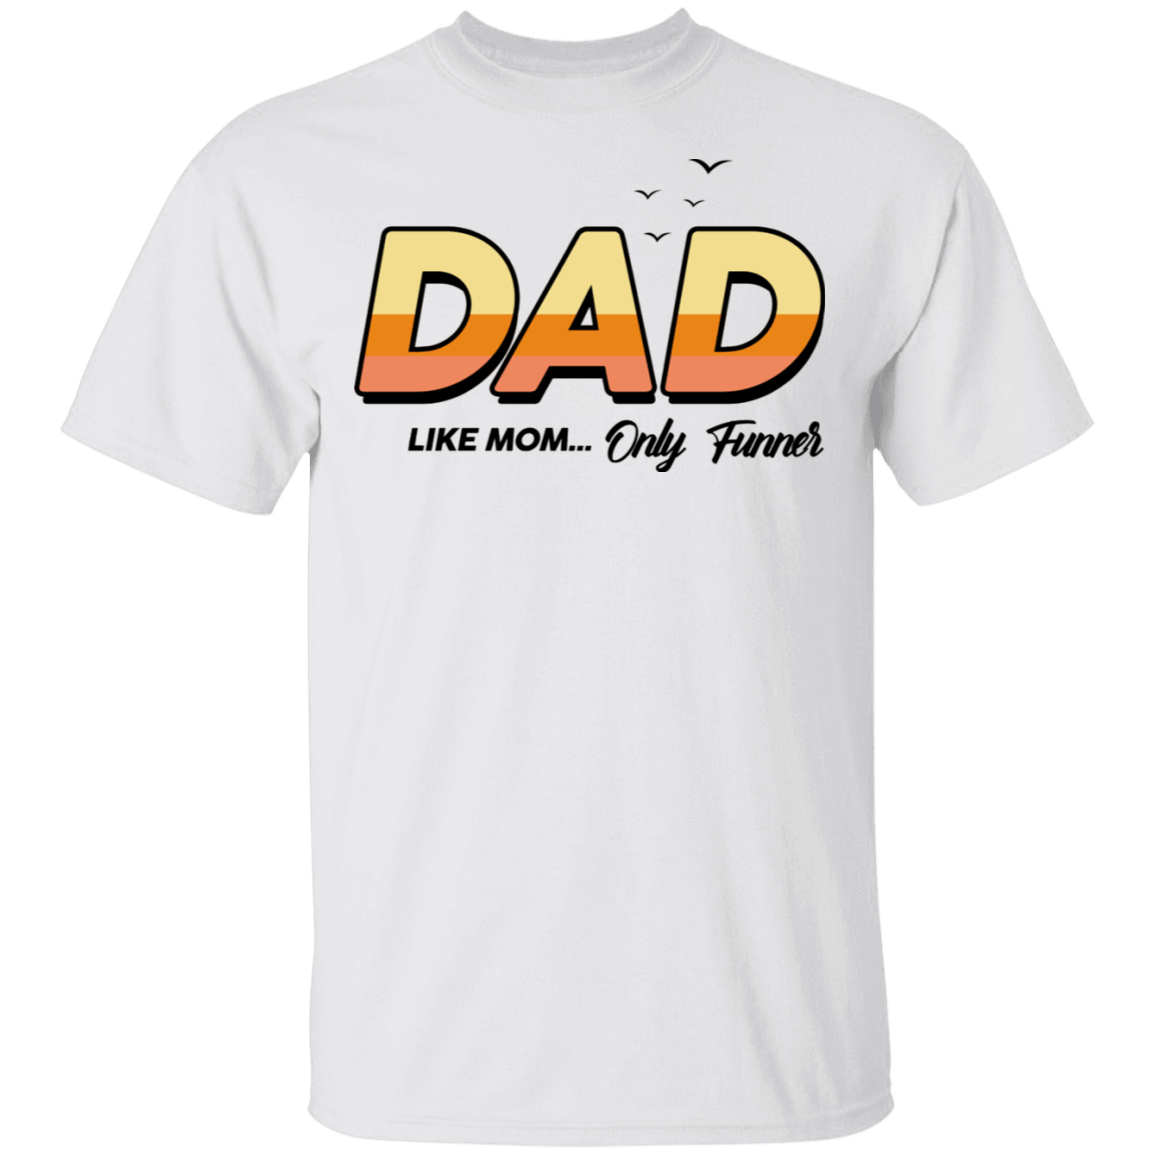 Dad Like Mom ... Only Funner T-Shirts, Hoodies, Tank 22-114-79999096-253 - Tee Ript